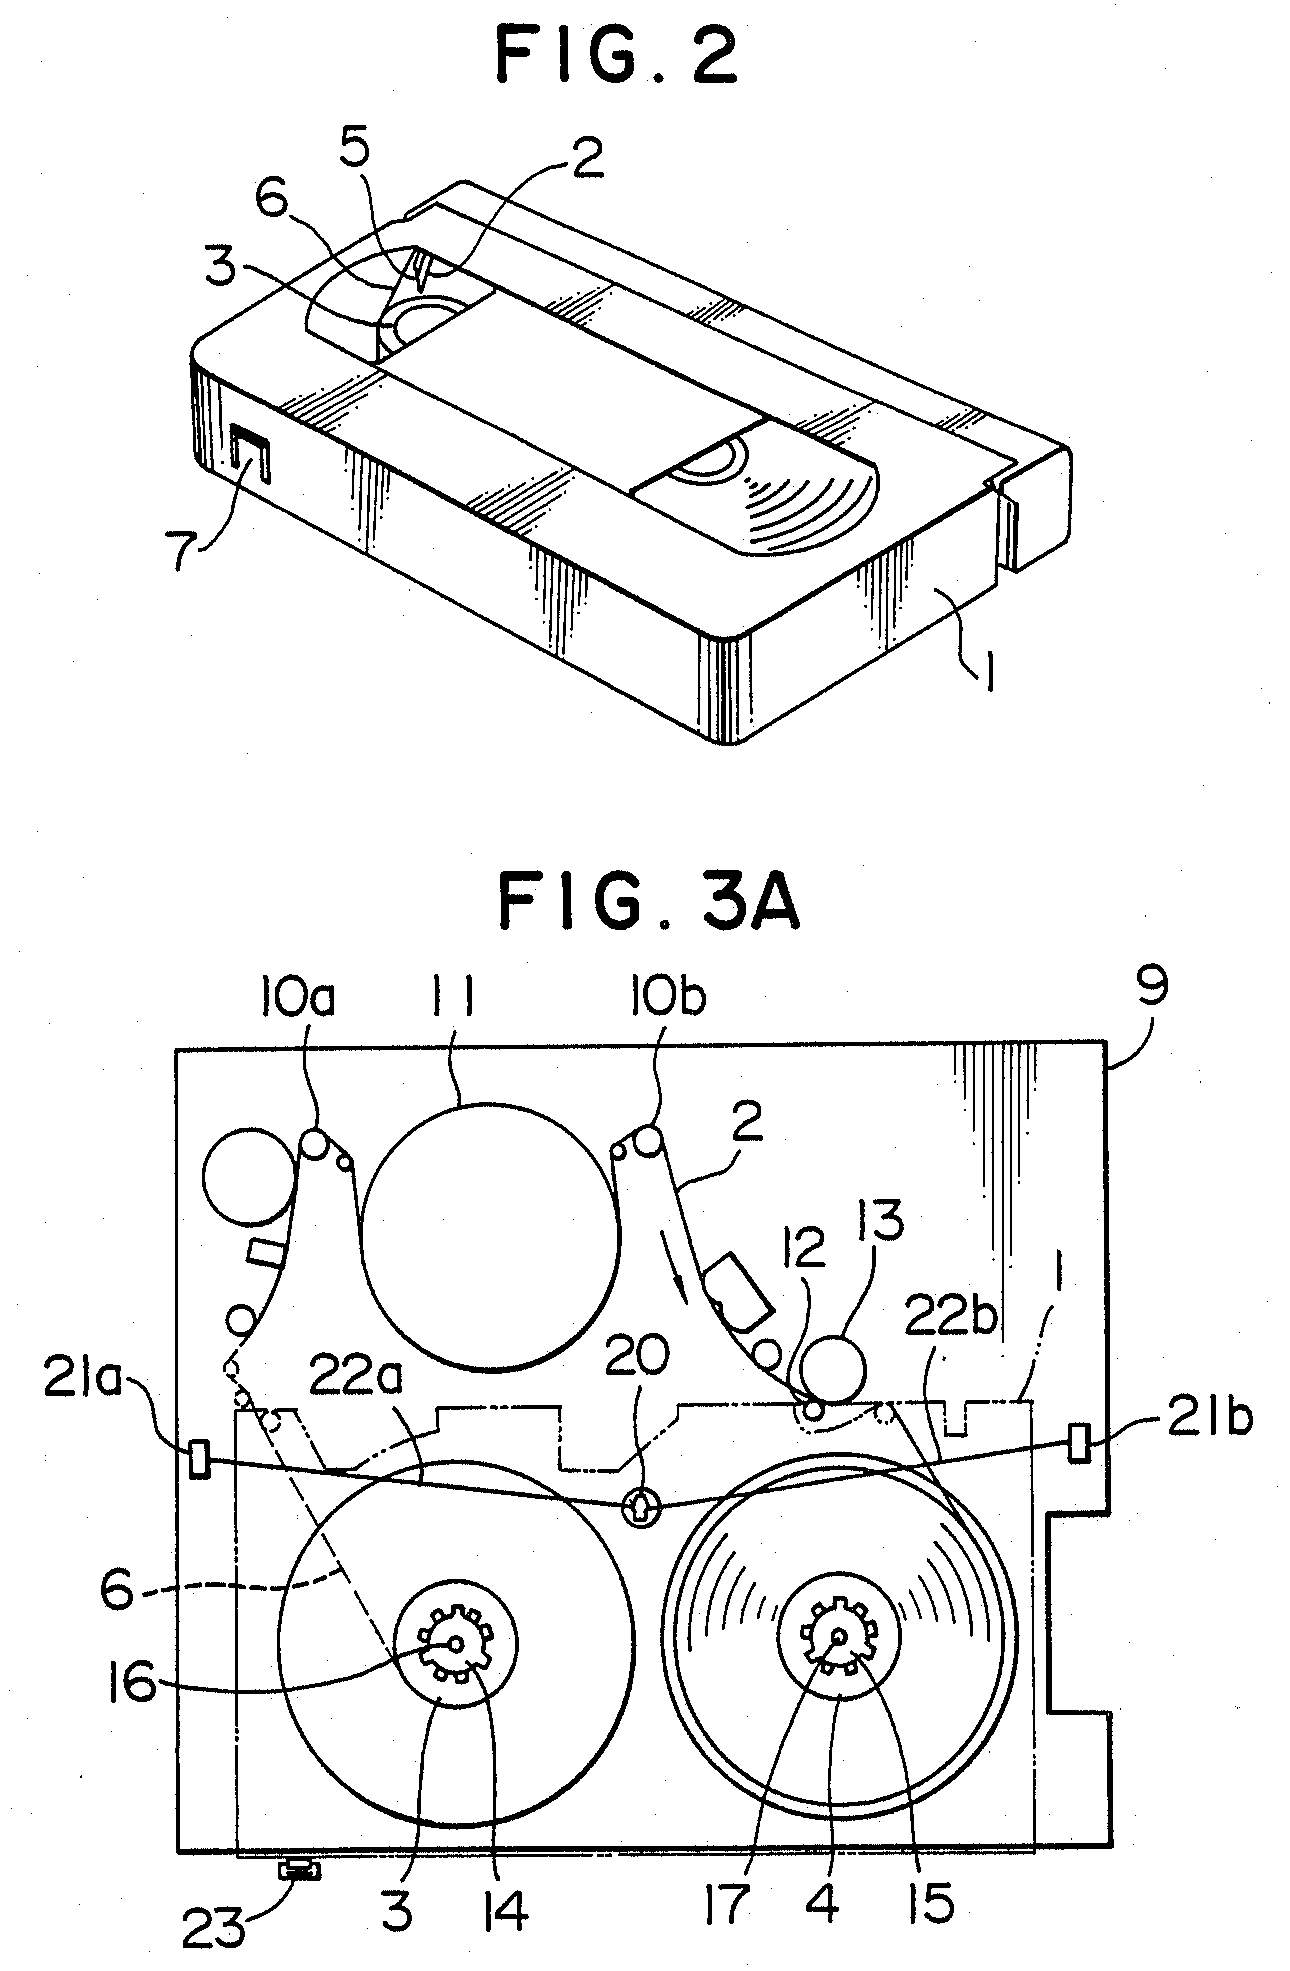 hight resolution of file magnetic video tape recorder diagram us004809115 003 png